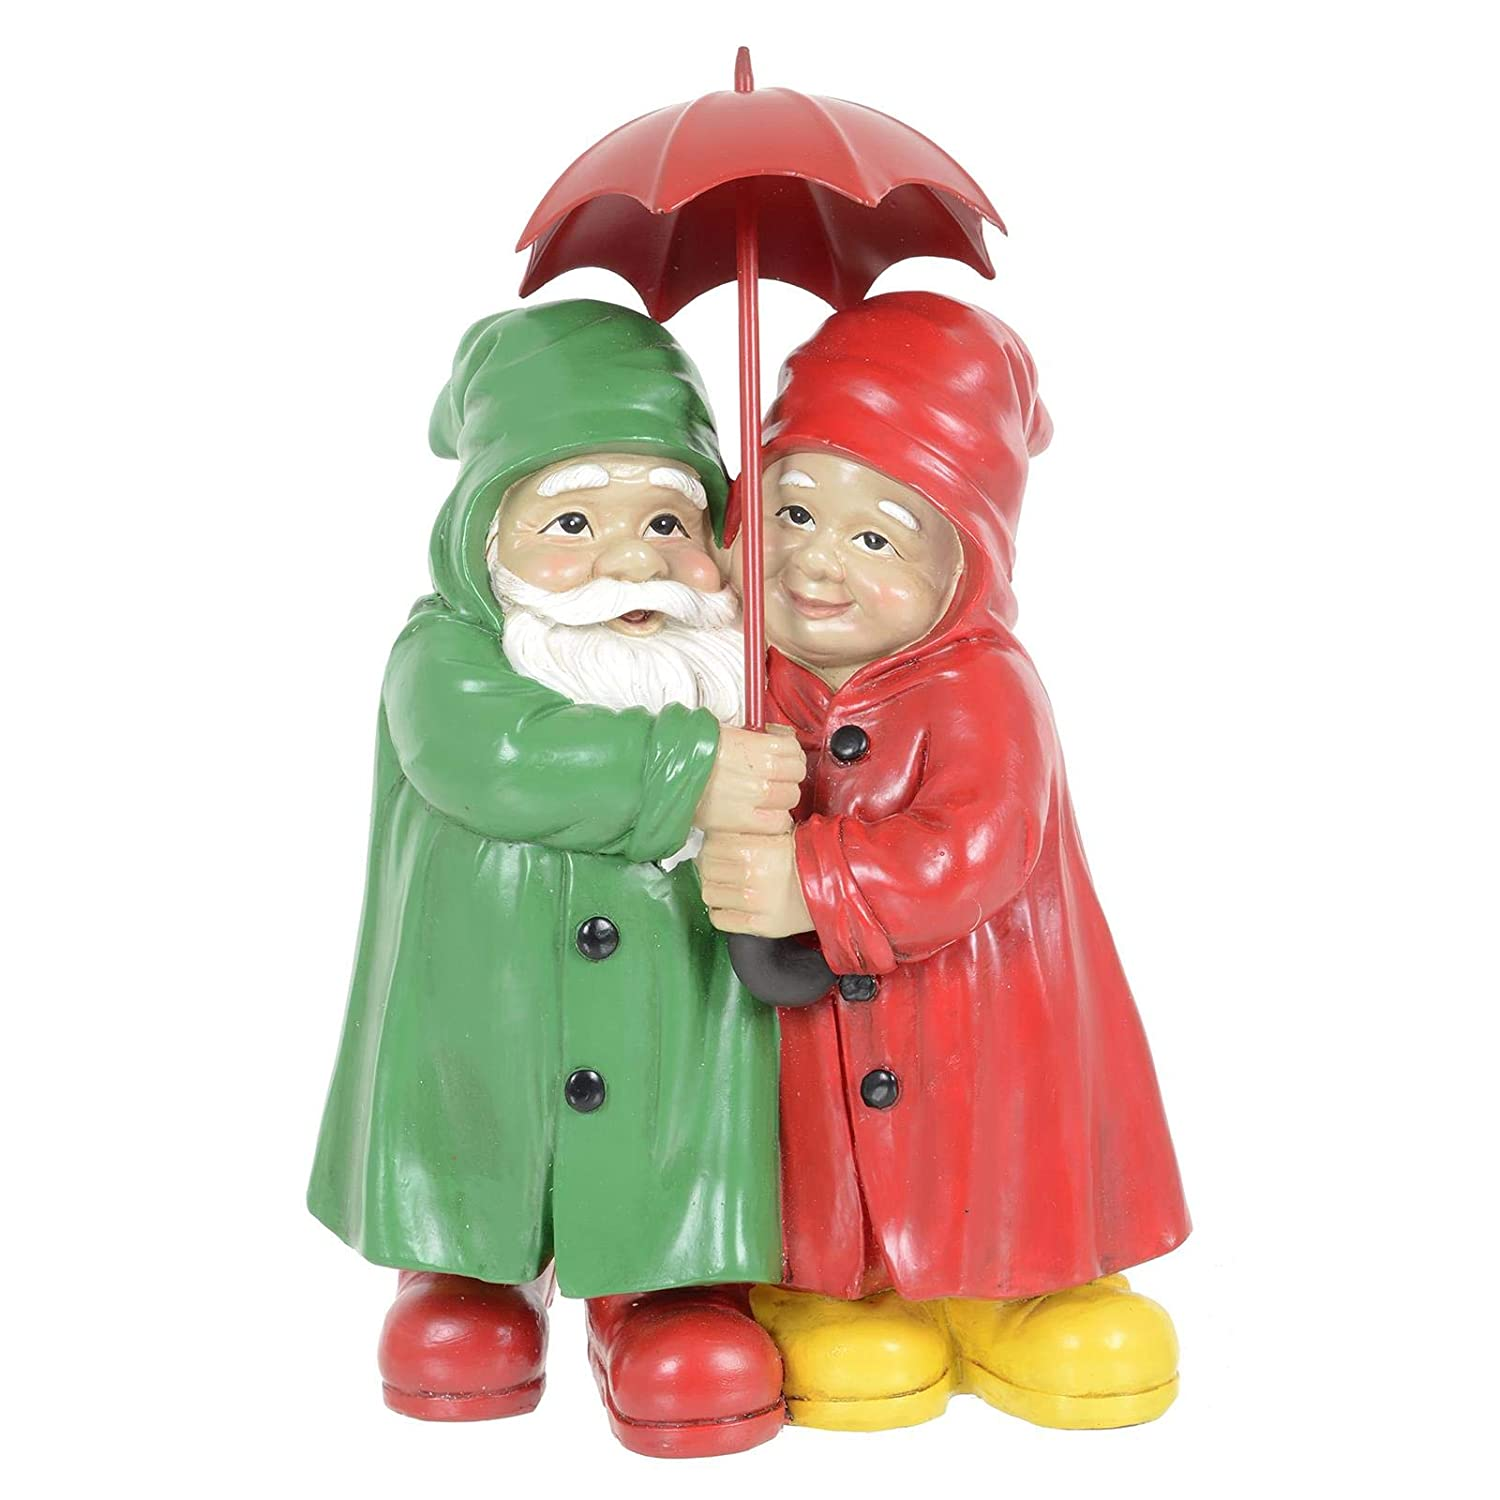 Azuma Garden Gnome Couple Ornament Adorable Novelty Figures Sheltering Under Red Umbrella For Your Lawn Flower Bed Patio Decking Polyresin Decoration Height 27cm